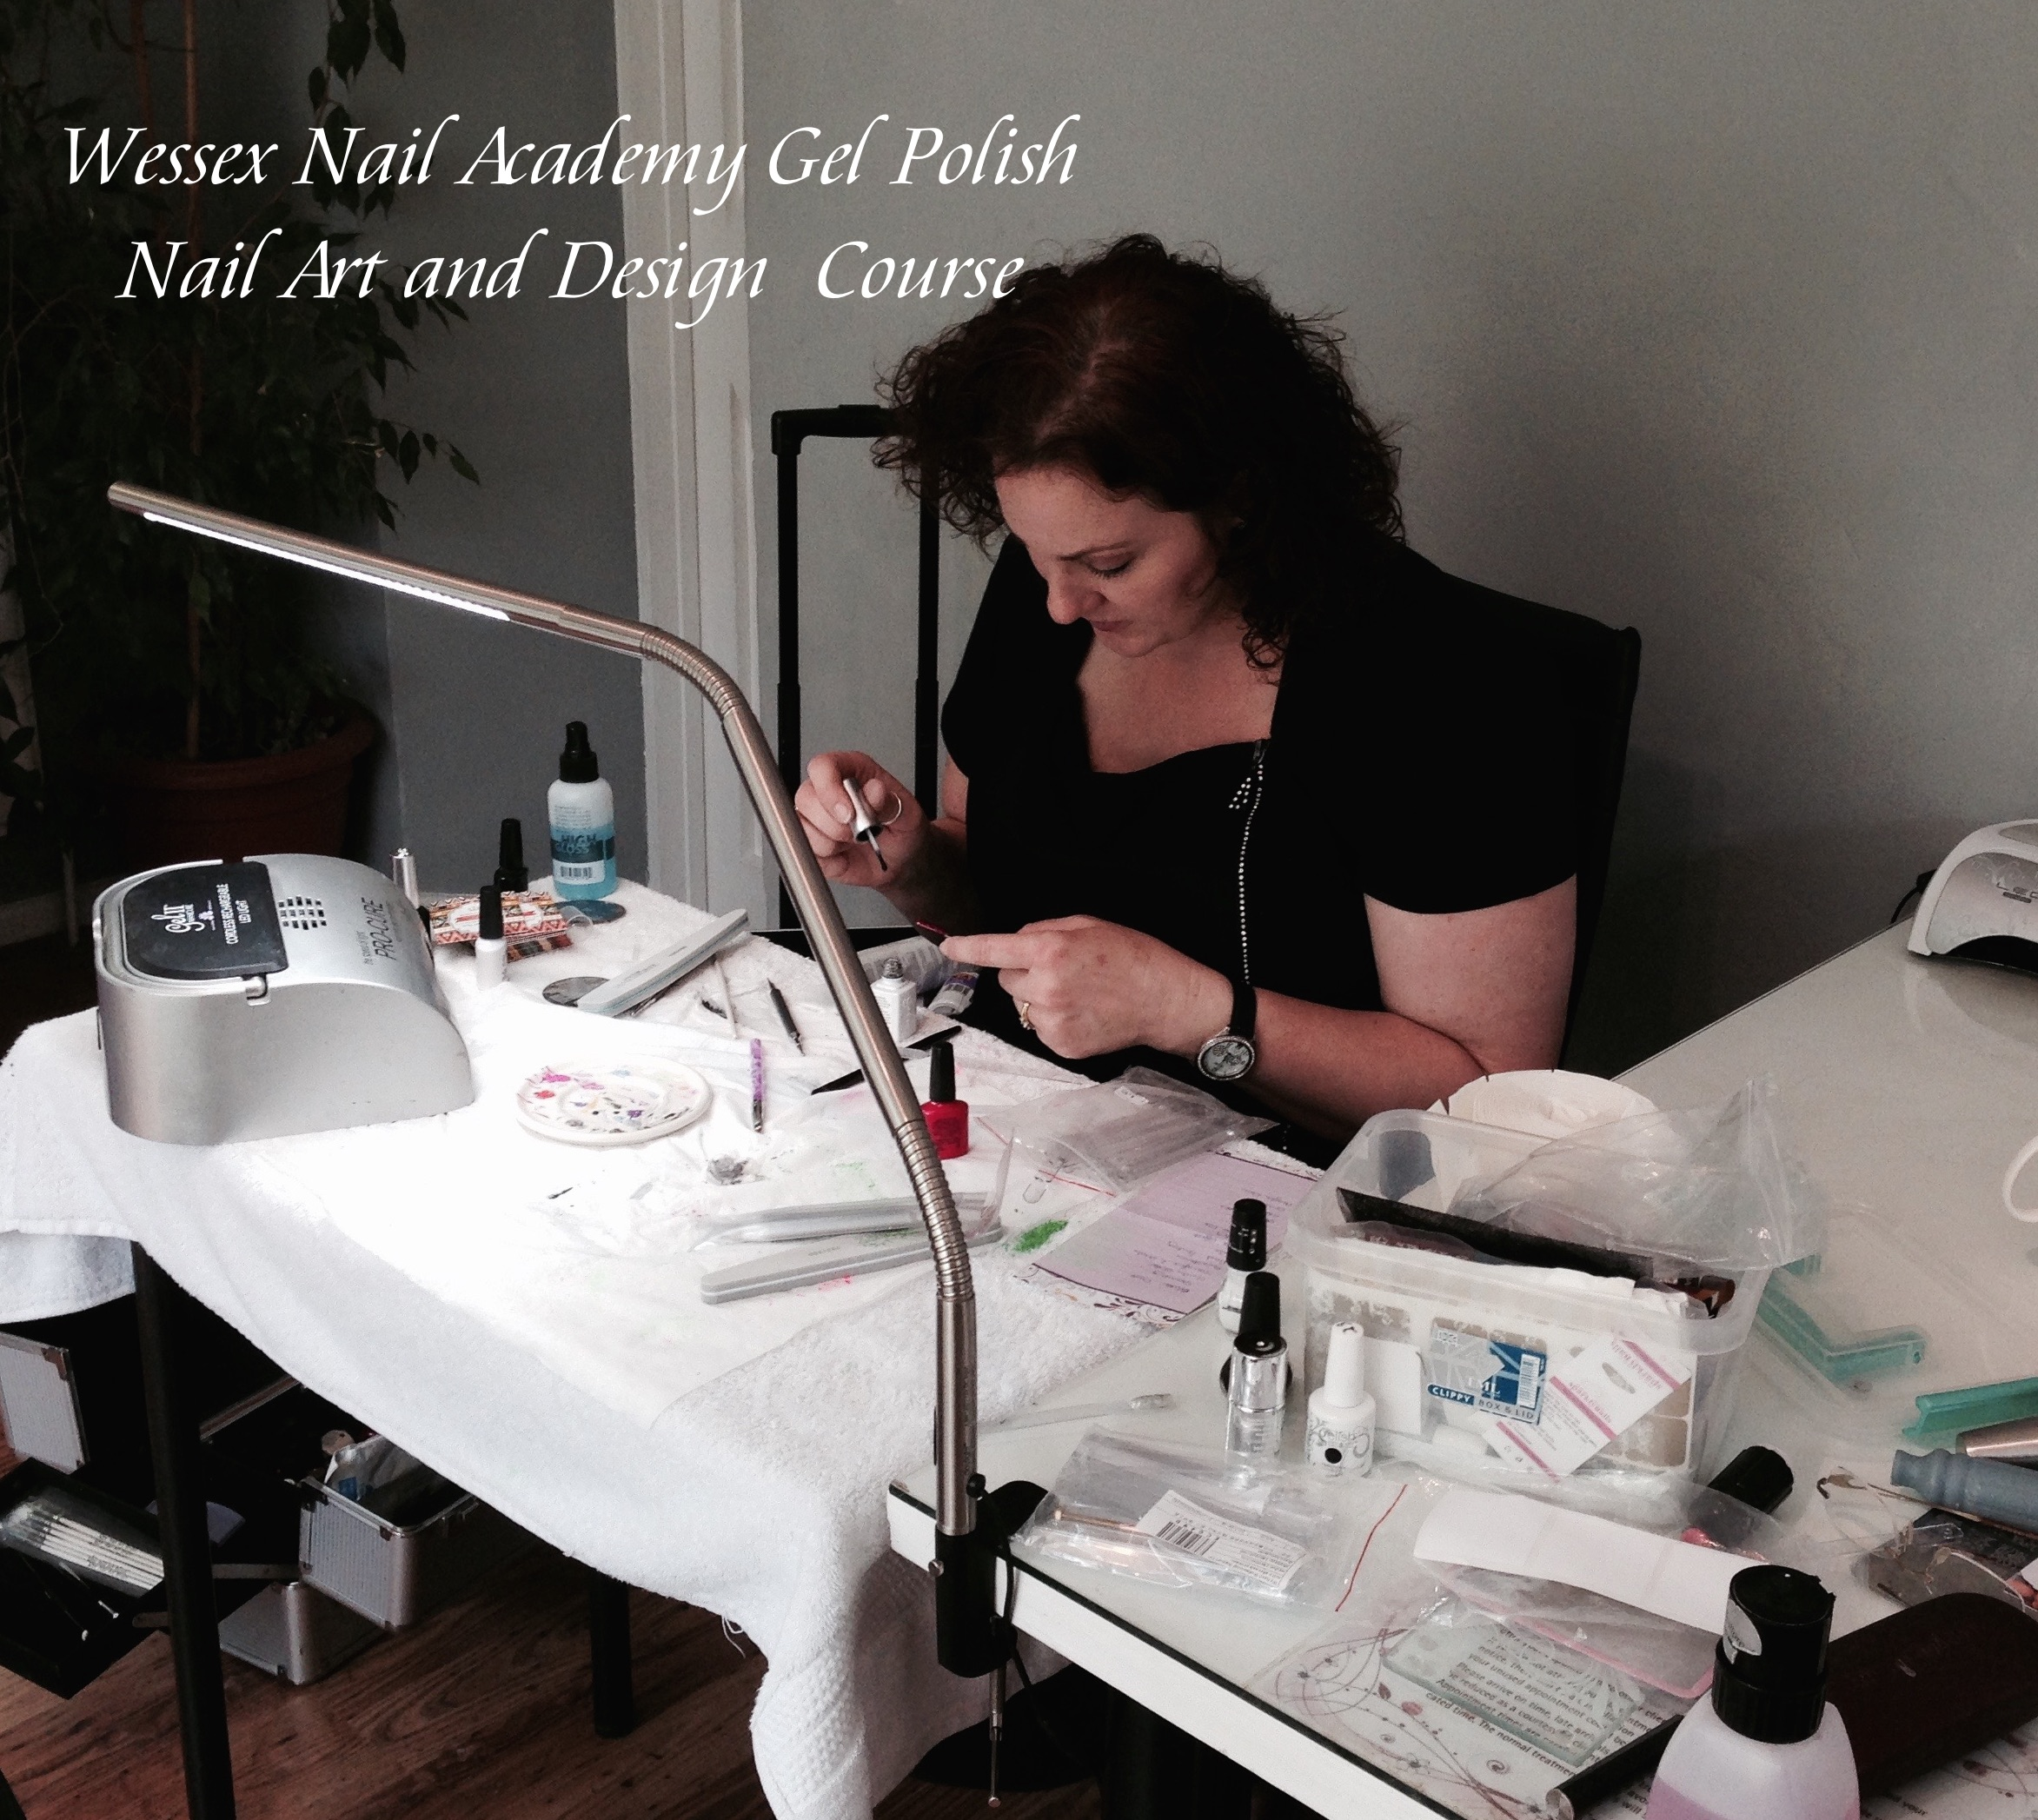 Nail Art Training Course, Nail extension training, nail training course, Wessex Nail Academy Okeford Fitzpaine, Dorset